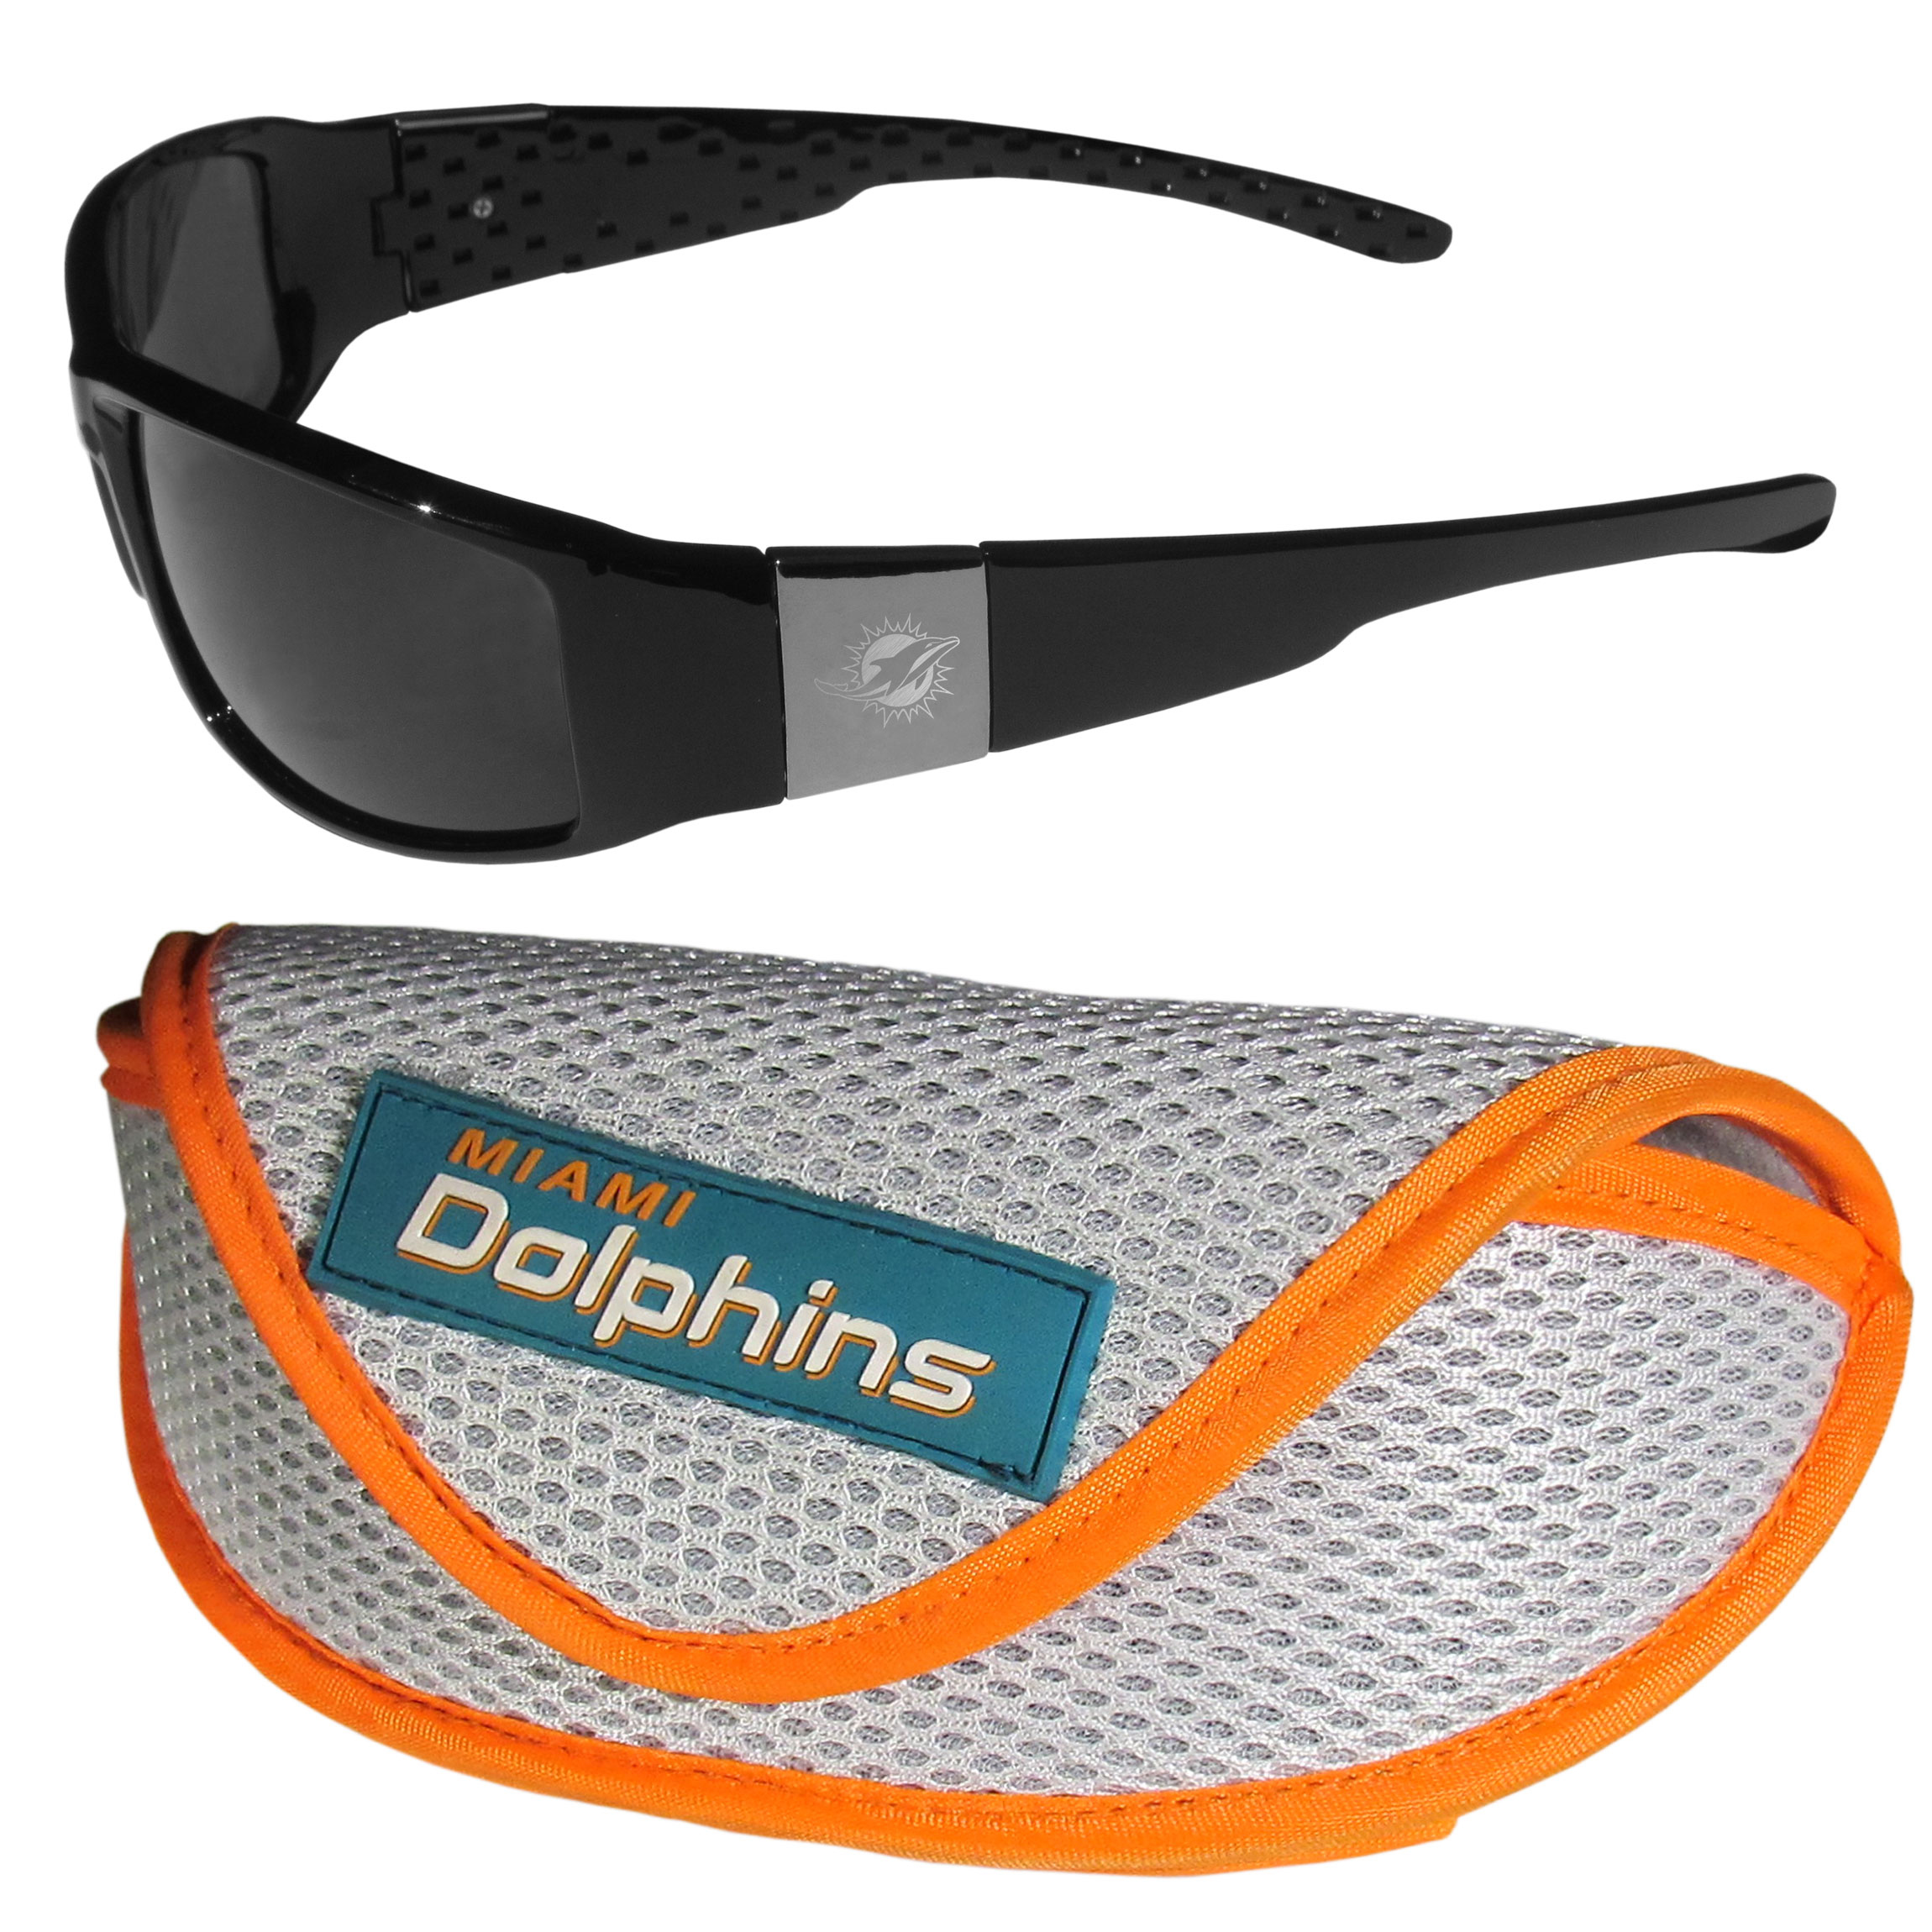 Miami Dolphins Chrome Wrap Sunglasses and Sports Case - Our sleek and stylish Miami Dolphins chrome wrap sunglasses and our sporty mesh case. The sunglasses feature etched team logos on each arm and 100% UVA/UVB protection. The case features a large and colorful team emblem.